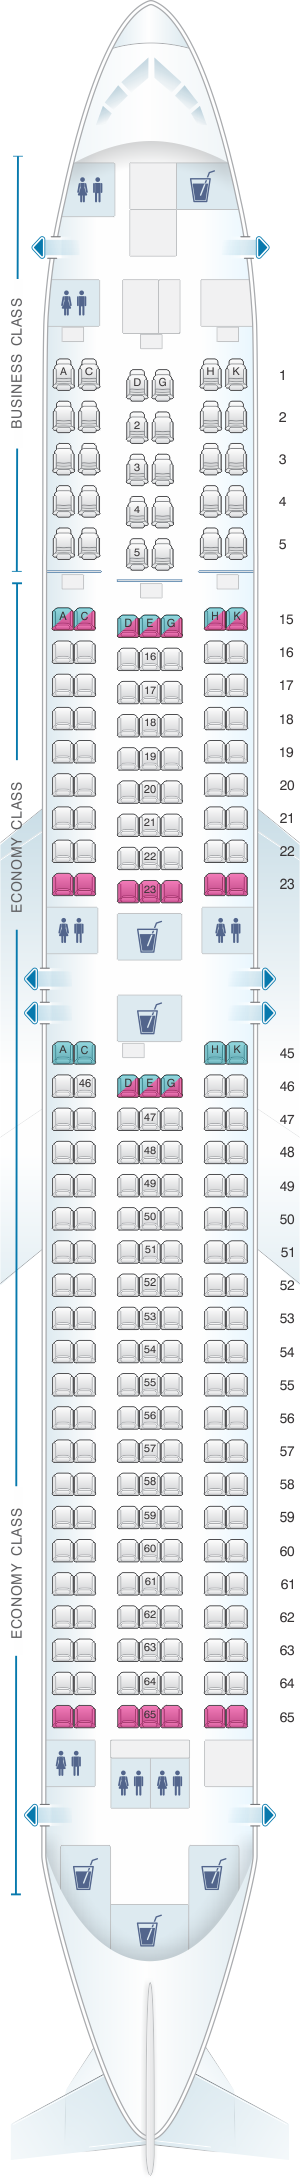 Seat map for Japan Airlines (JAL) Boeing B767 300ER A41